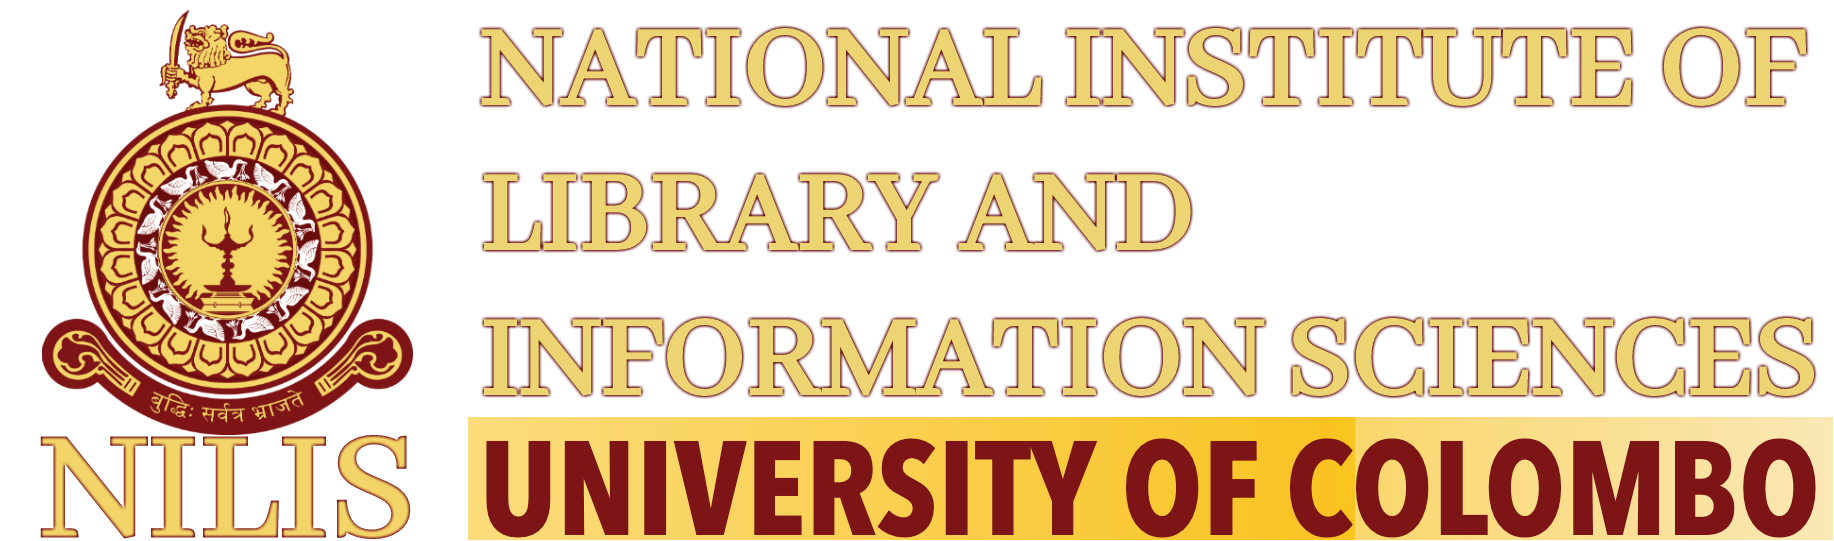 Draft Covid-19 Exit Strategy for Libraries | NILIS, University of Colombo, Sri Lanka